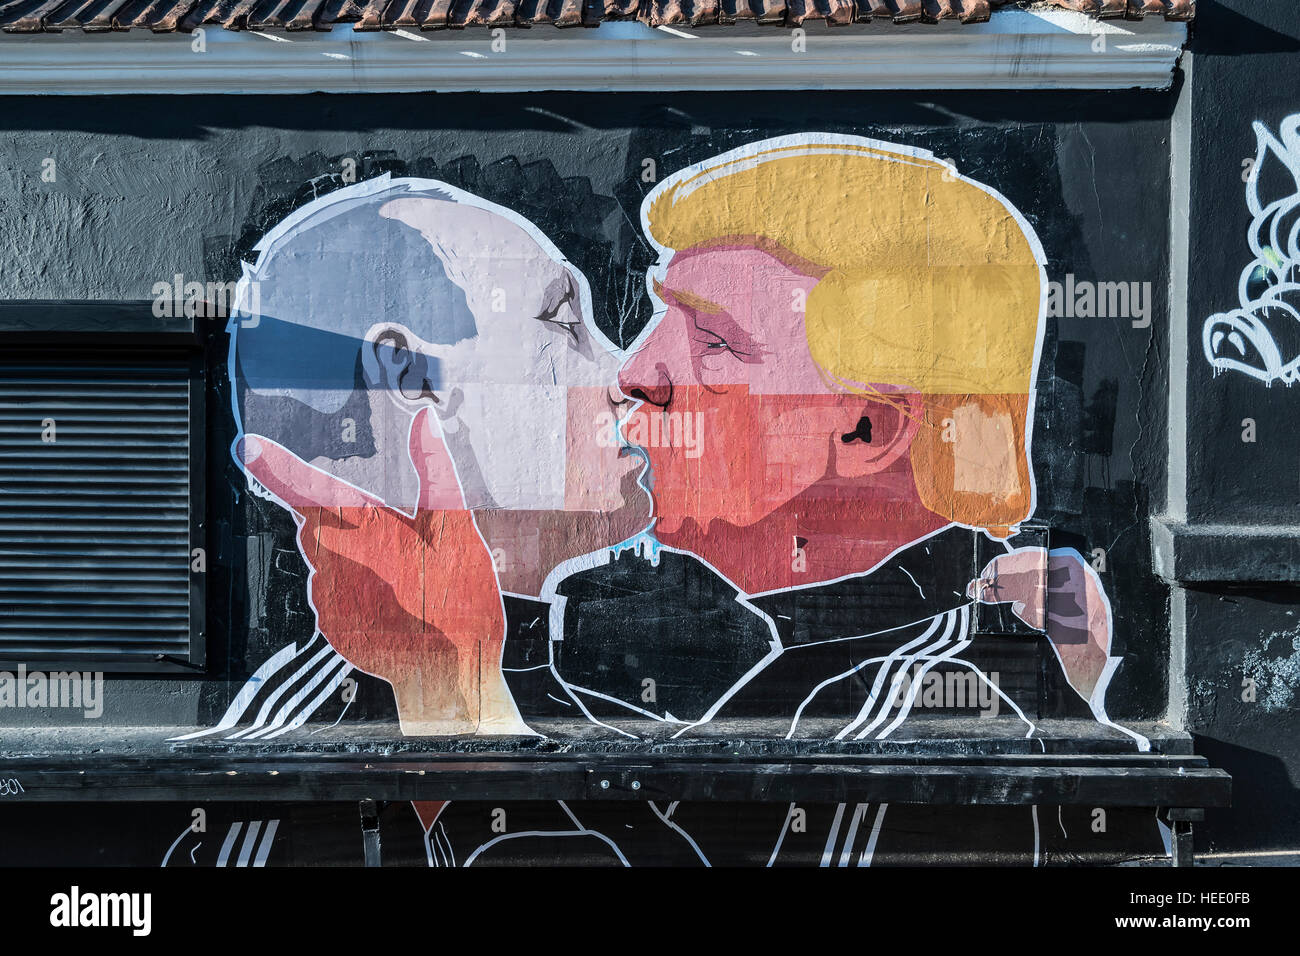 Picture of Vladimir Putin and Donald Trump kissing - Stock Image